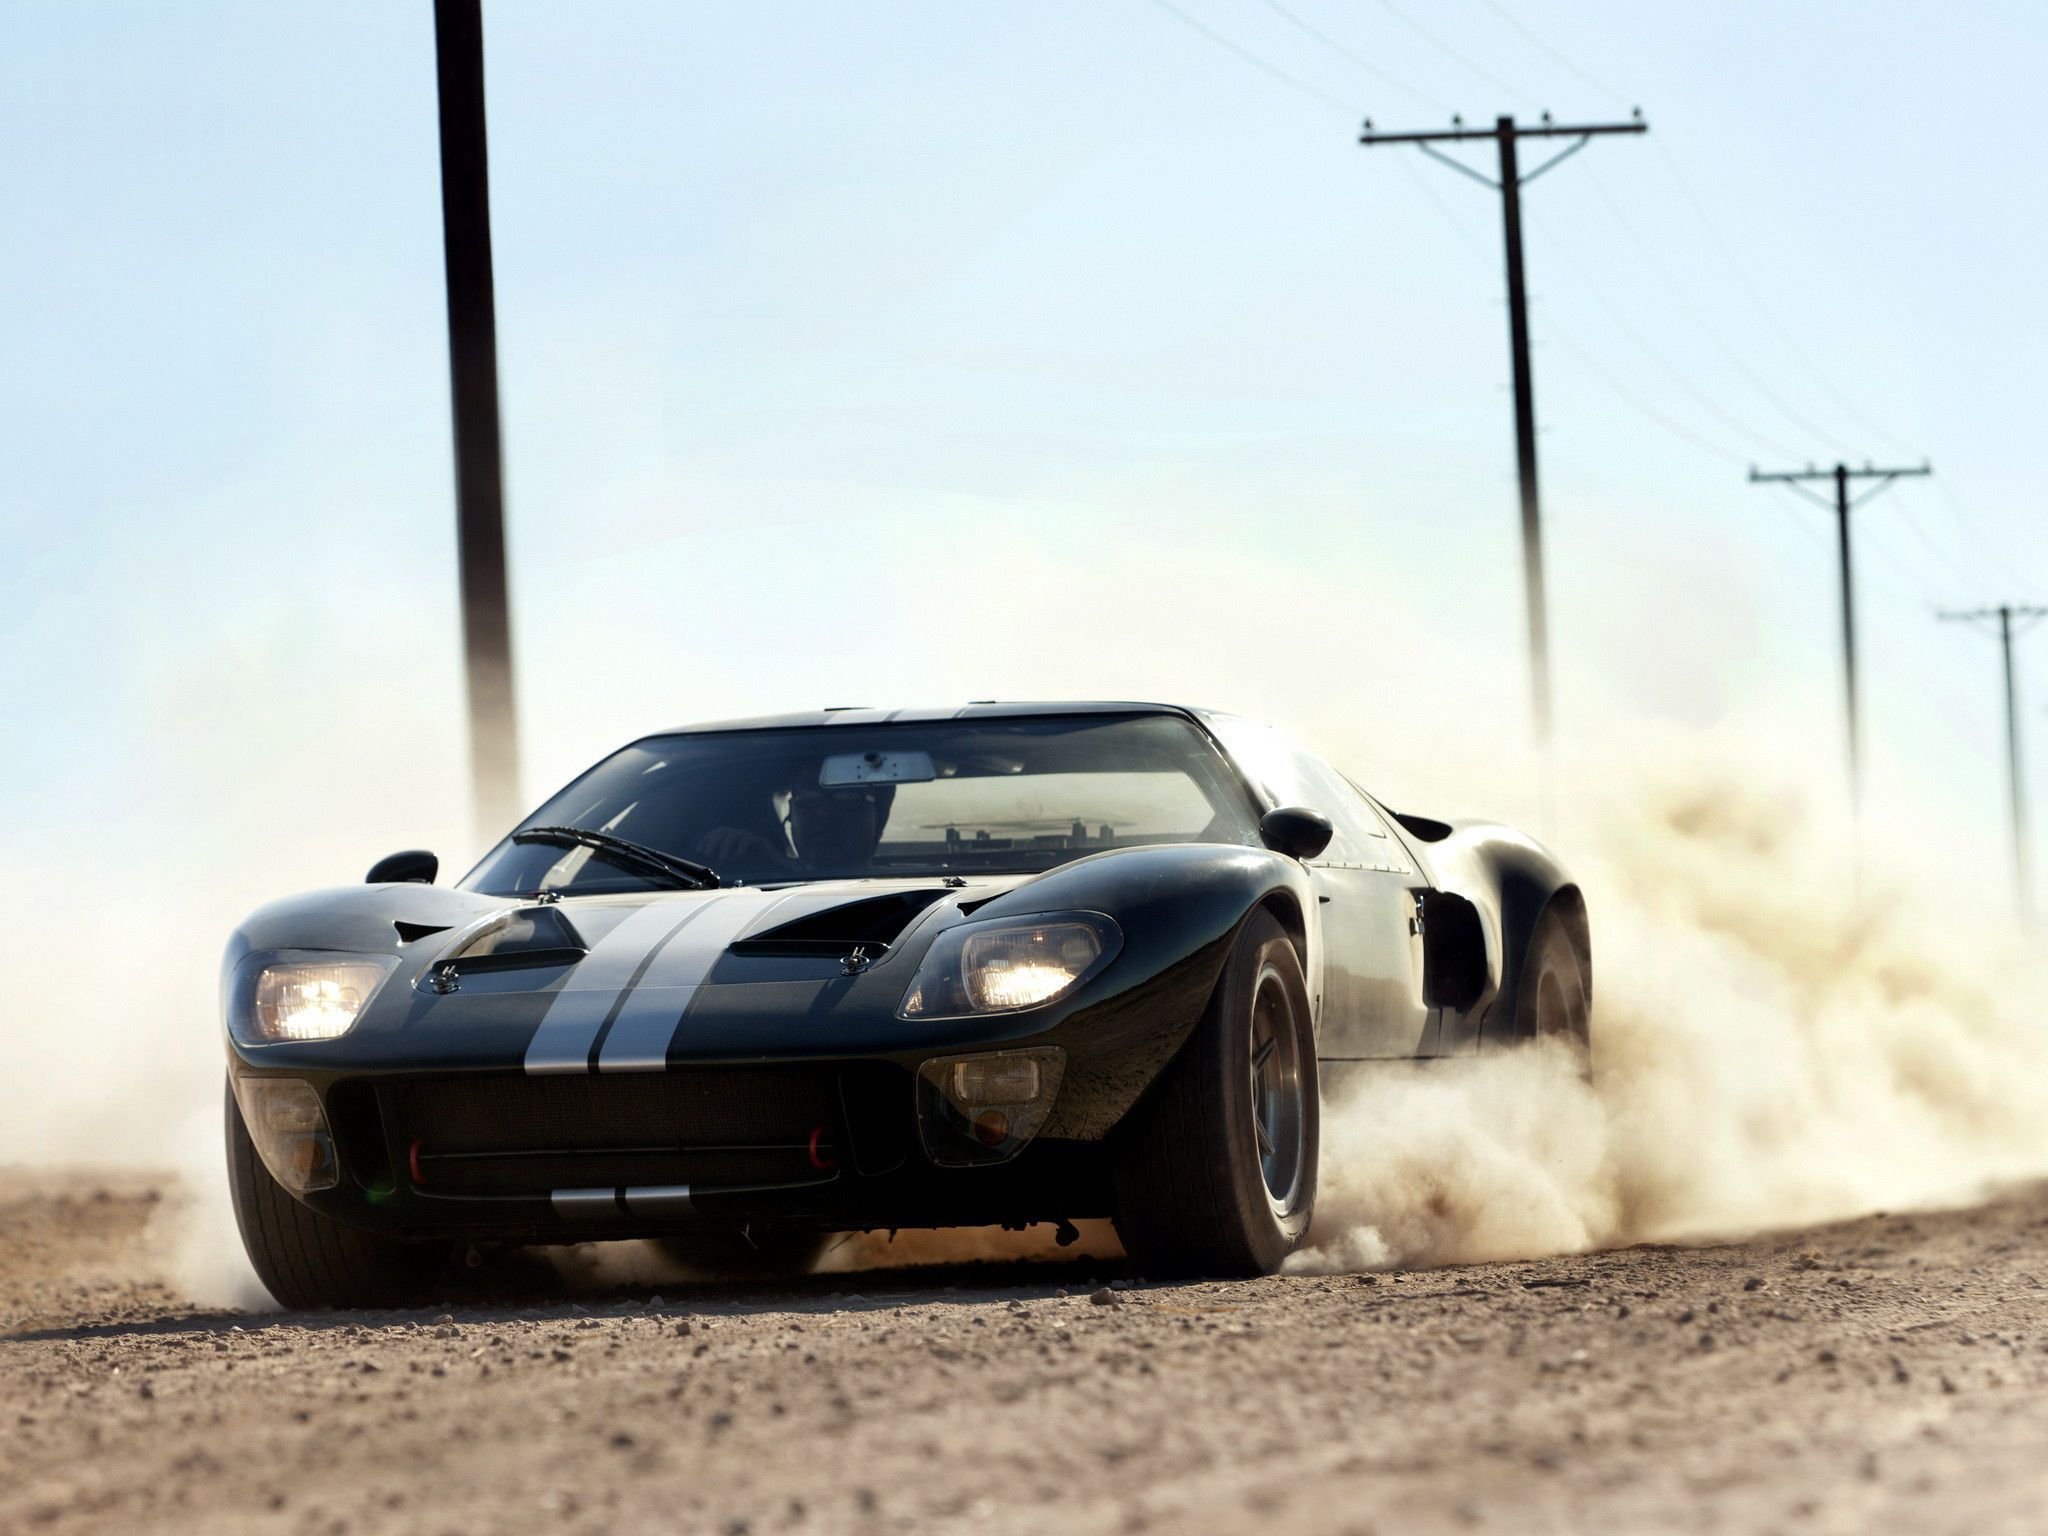 1965 Ford Gt40 Mkii Supercar Race Racing Classic G T G Wallpaper Ford Gt Ford Gt40 1965 Ford